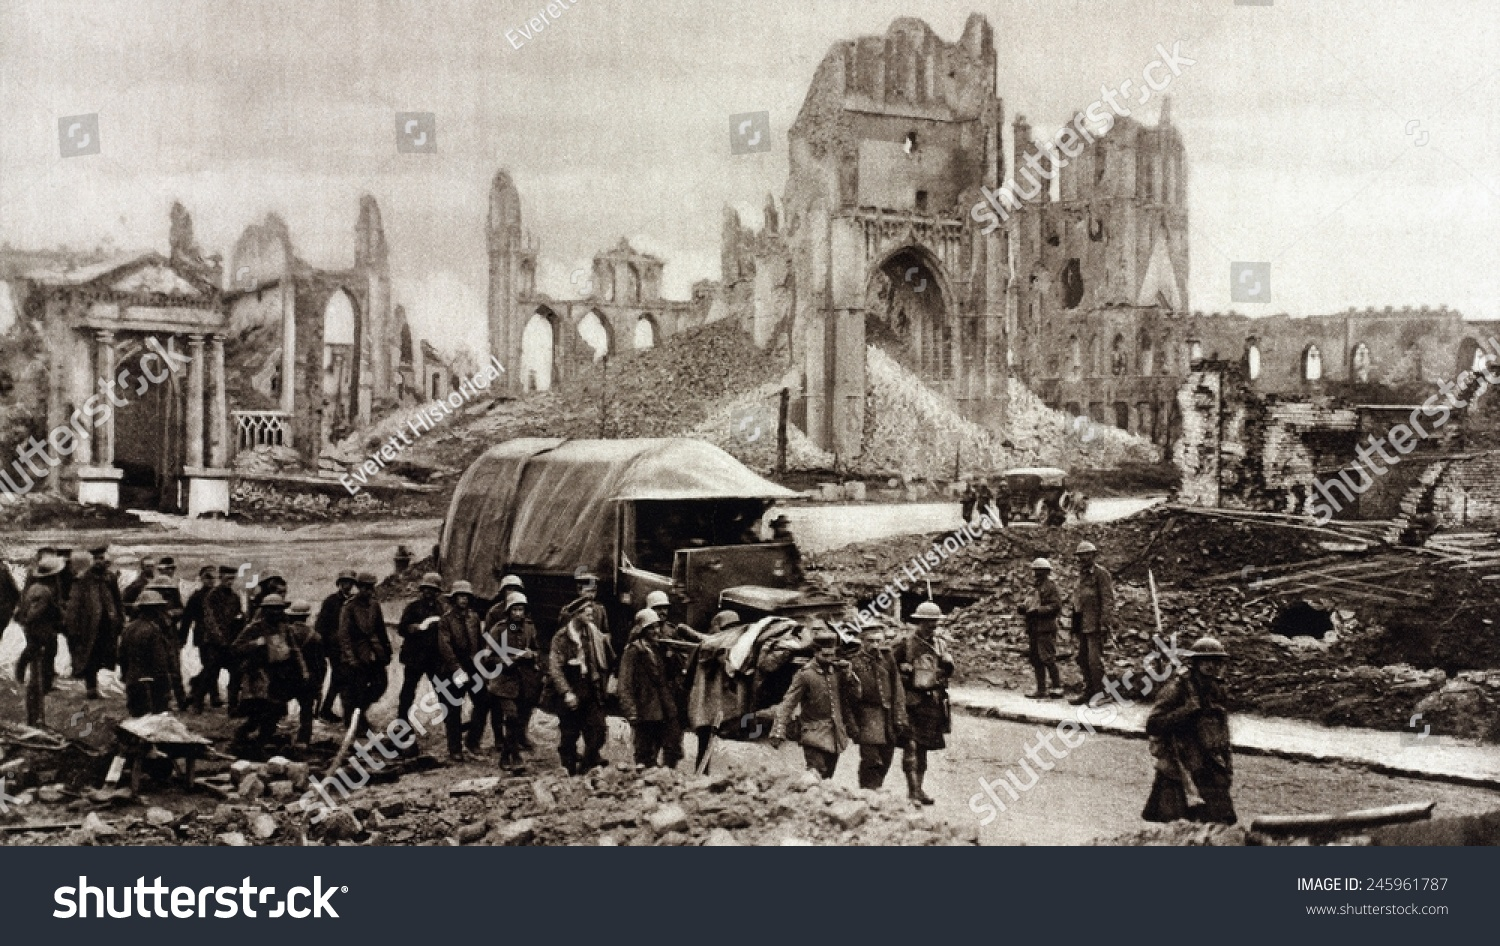 account of the battle of ypres The first large-scale use of lethal poison gas on the battlefield was by the germans on 22 april 1915 during the battle of second ypres results of gas at ypres.